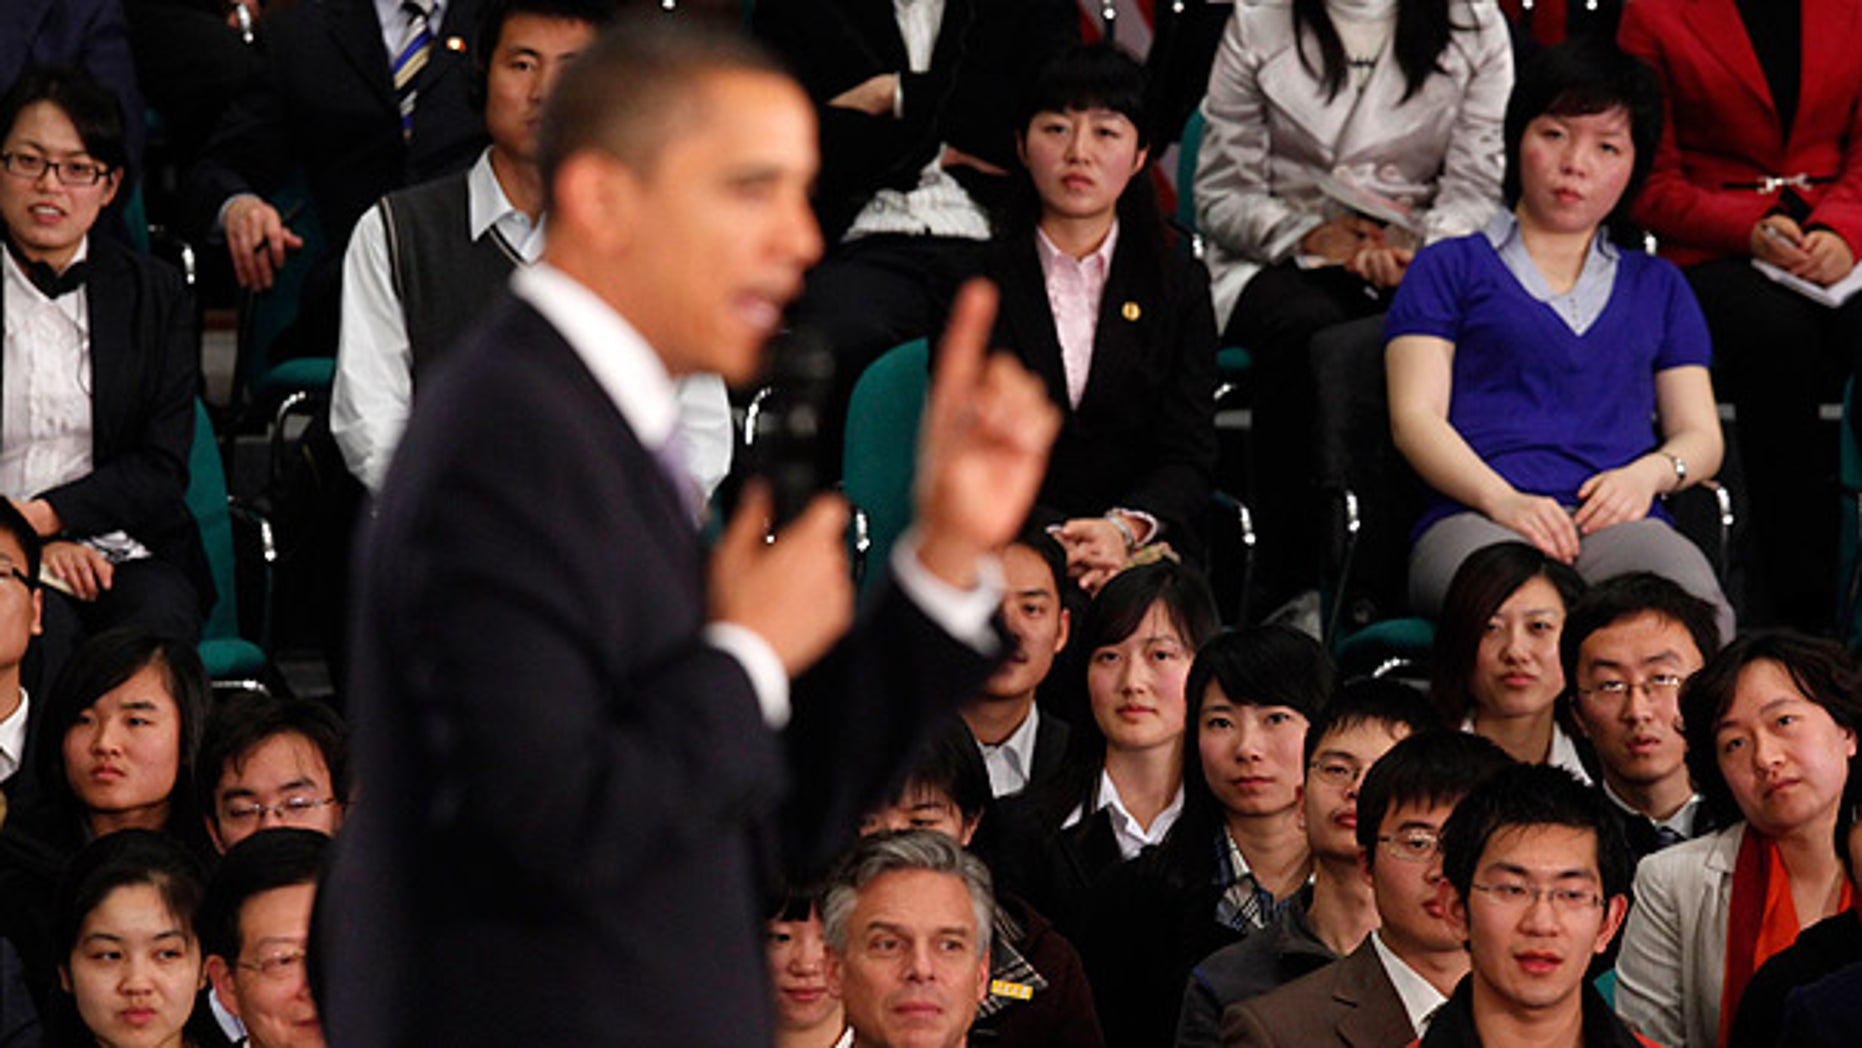 Nov. 16: Audience members listen as President Obama speaks at a town hall style event with Chinese youth at the Museum of Science and Technology in Shanghai. (AP)